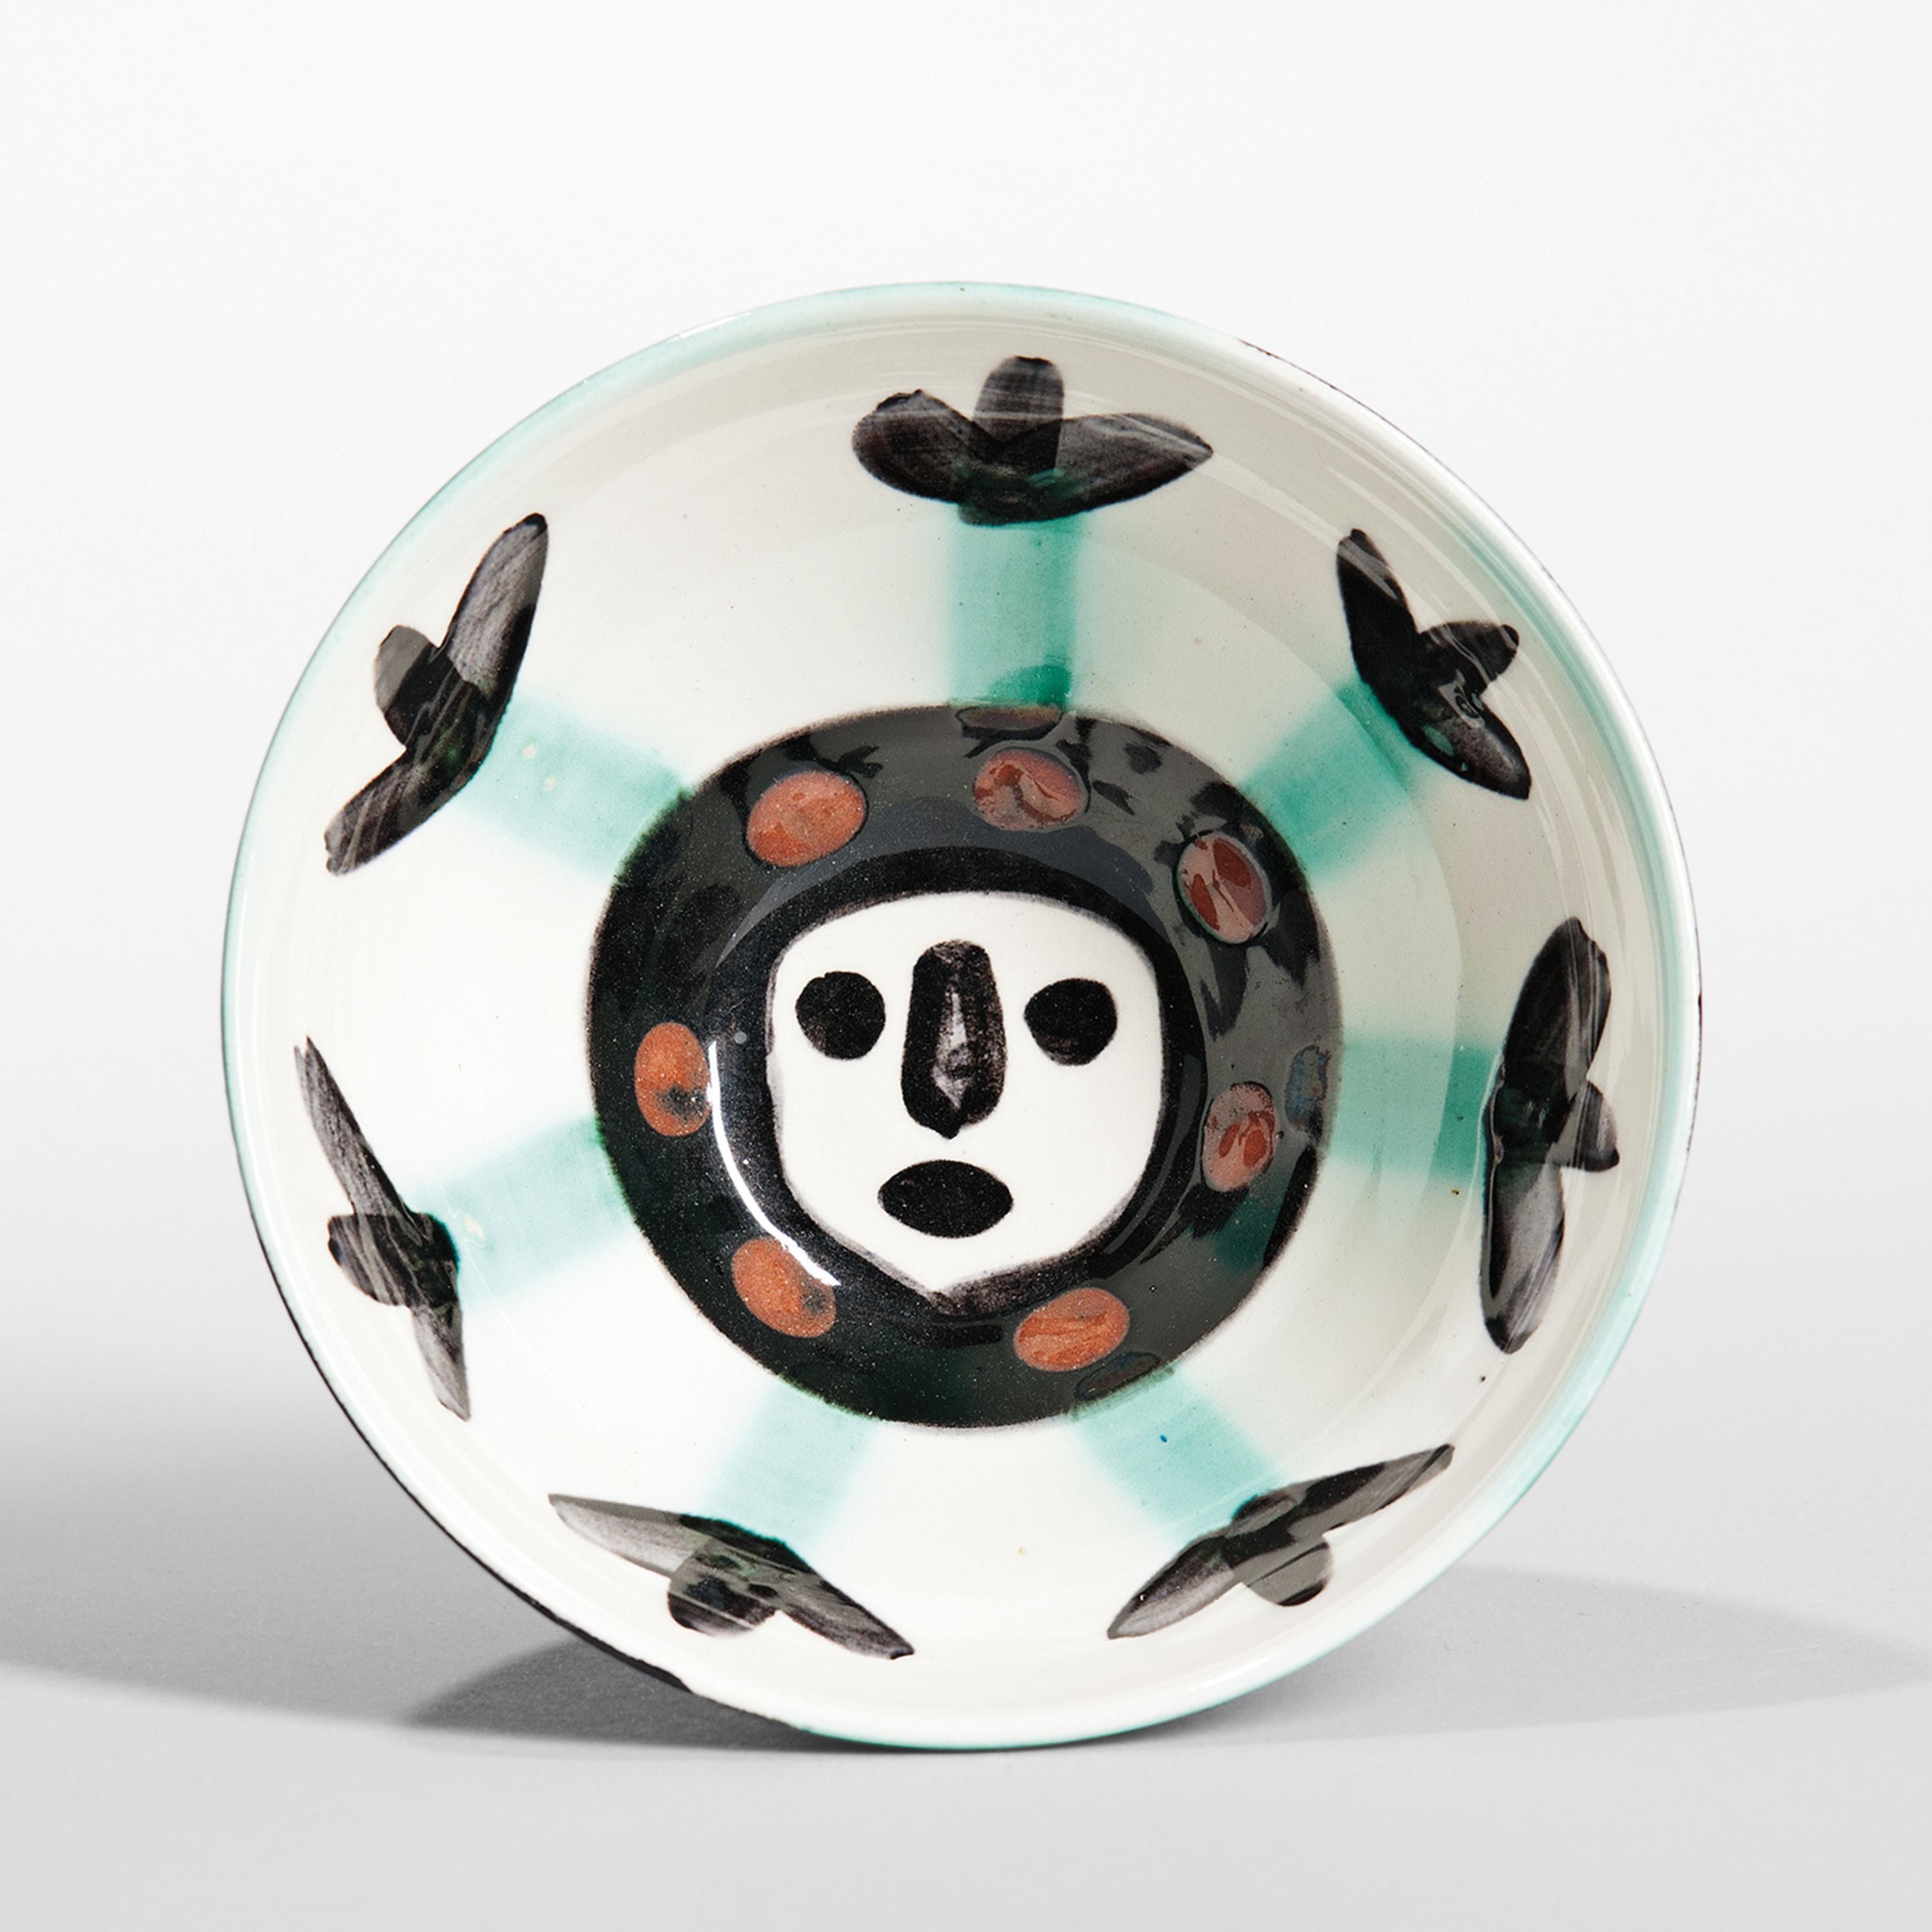 Pablo Picasso (1881-1973) Visage Bowl Glazed ceramic 1955 Madoura round cup of white clay hand-decorated in engobes, black, green, and brick red underglaze, marked Edition Picasso Madoura, ht. 2 1/2, dia. 5 1/8 in.